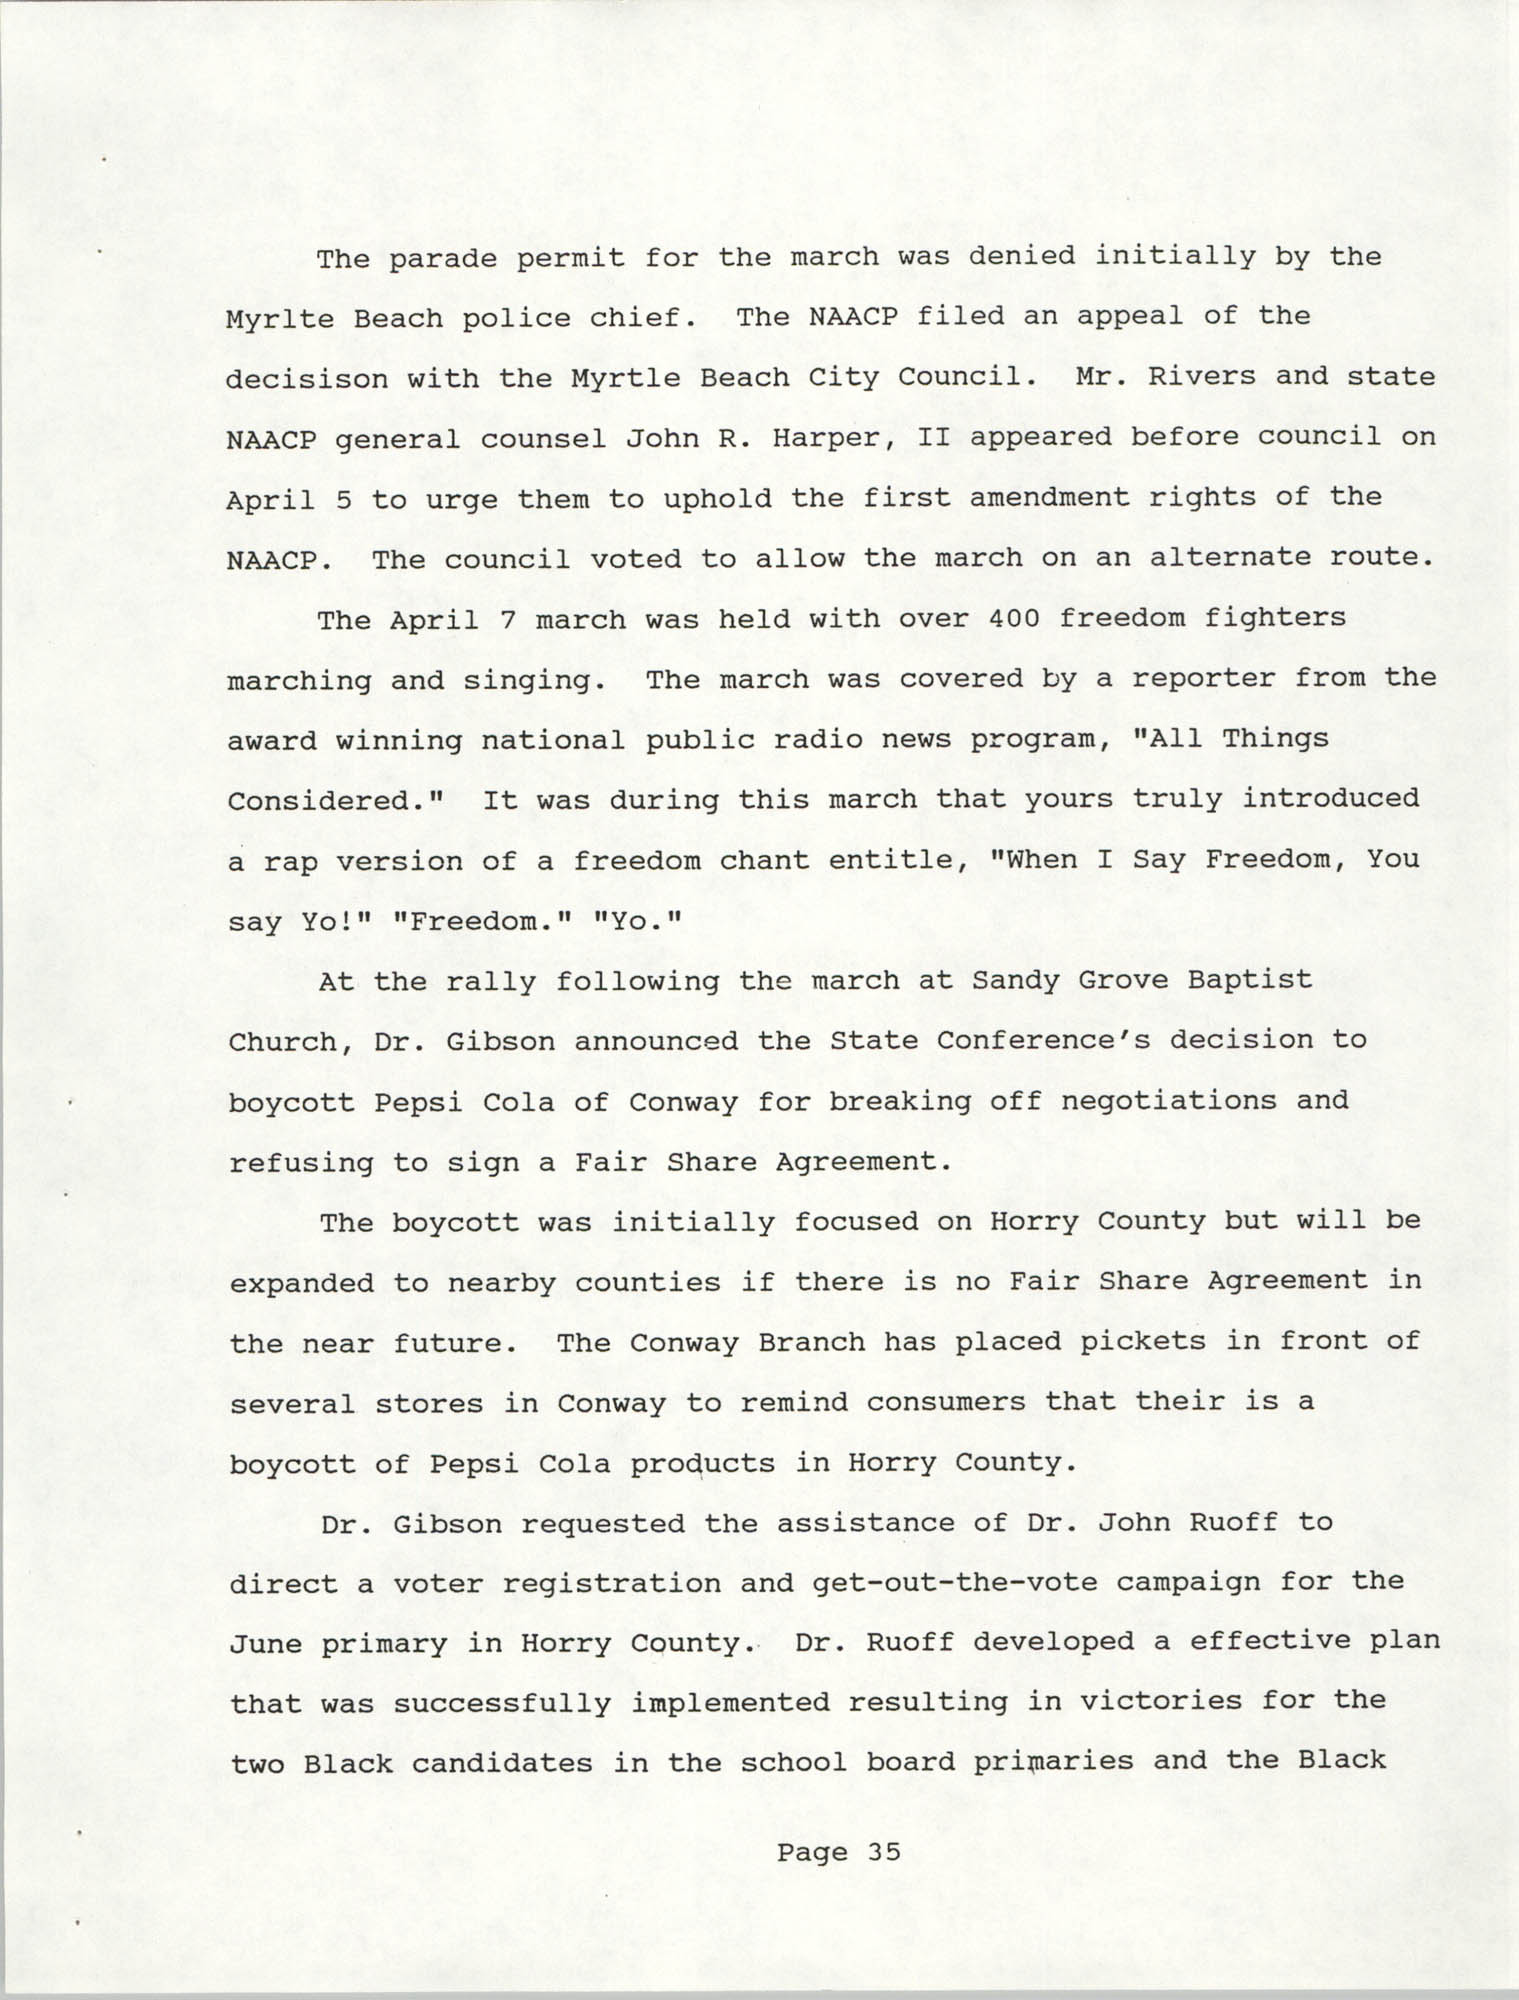 South Carolina Conference of Branches of the NAACP, 1990 Annual Report, Part Two, Page 35